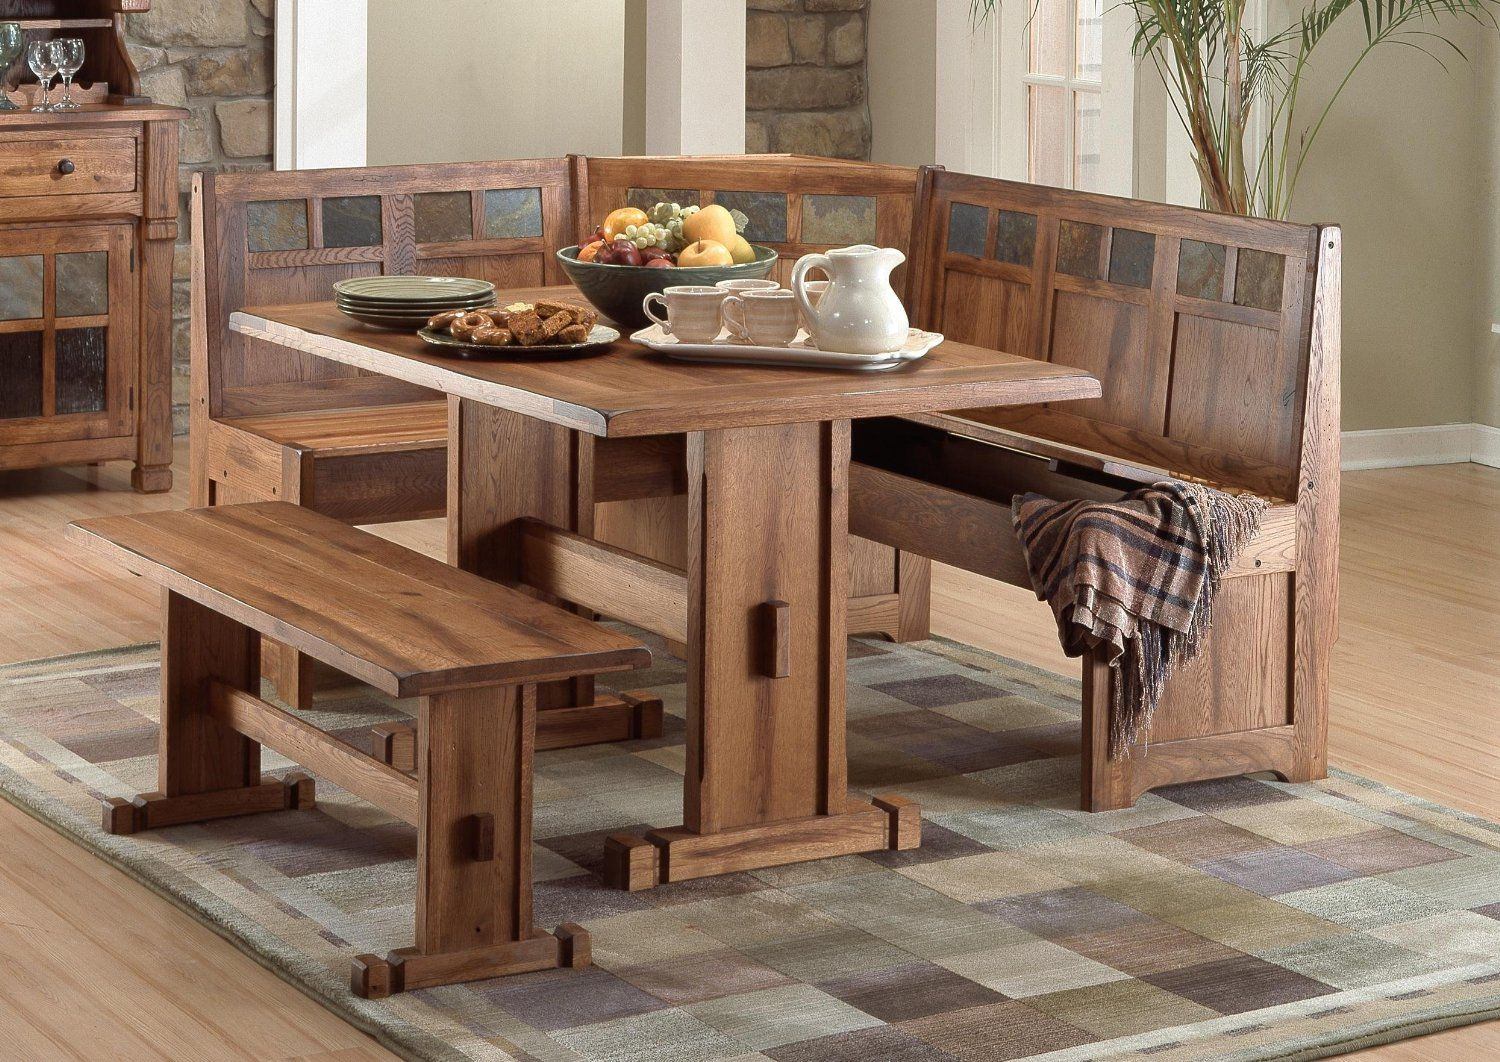 Kitchen Dining Room Tables 17 Best Ideas About Wooden Dining Tables On Pinterest Wooden